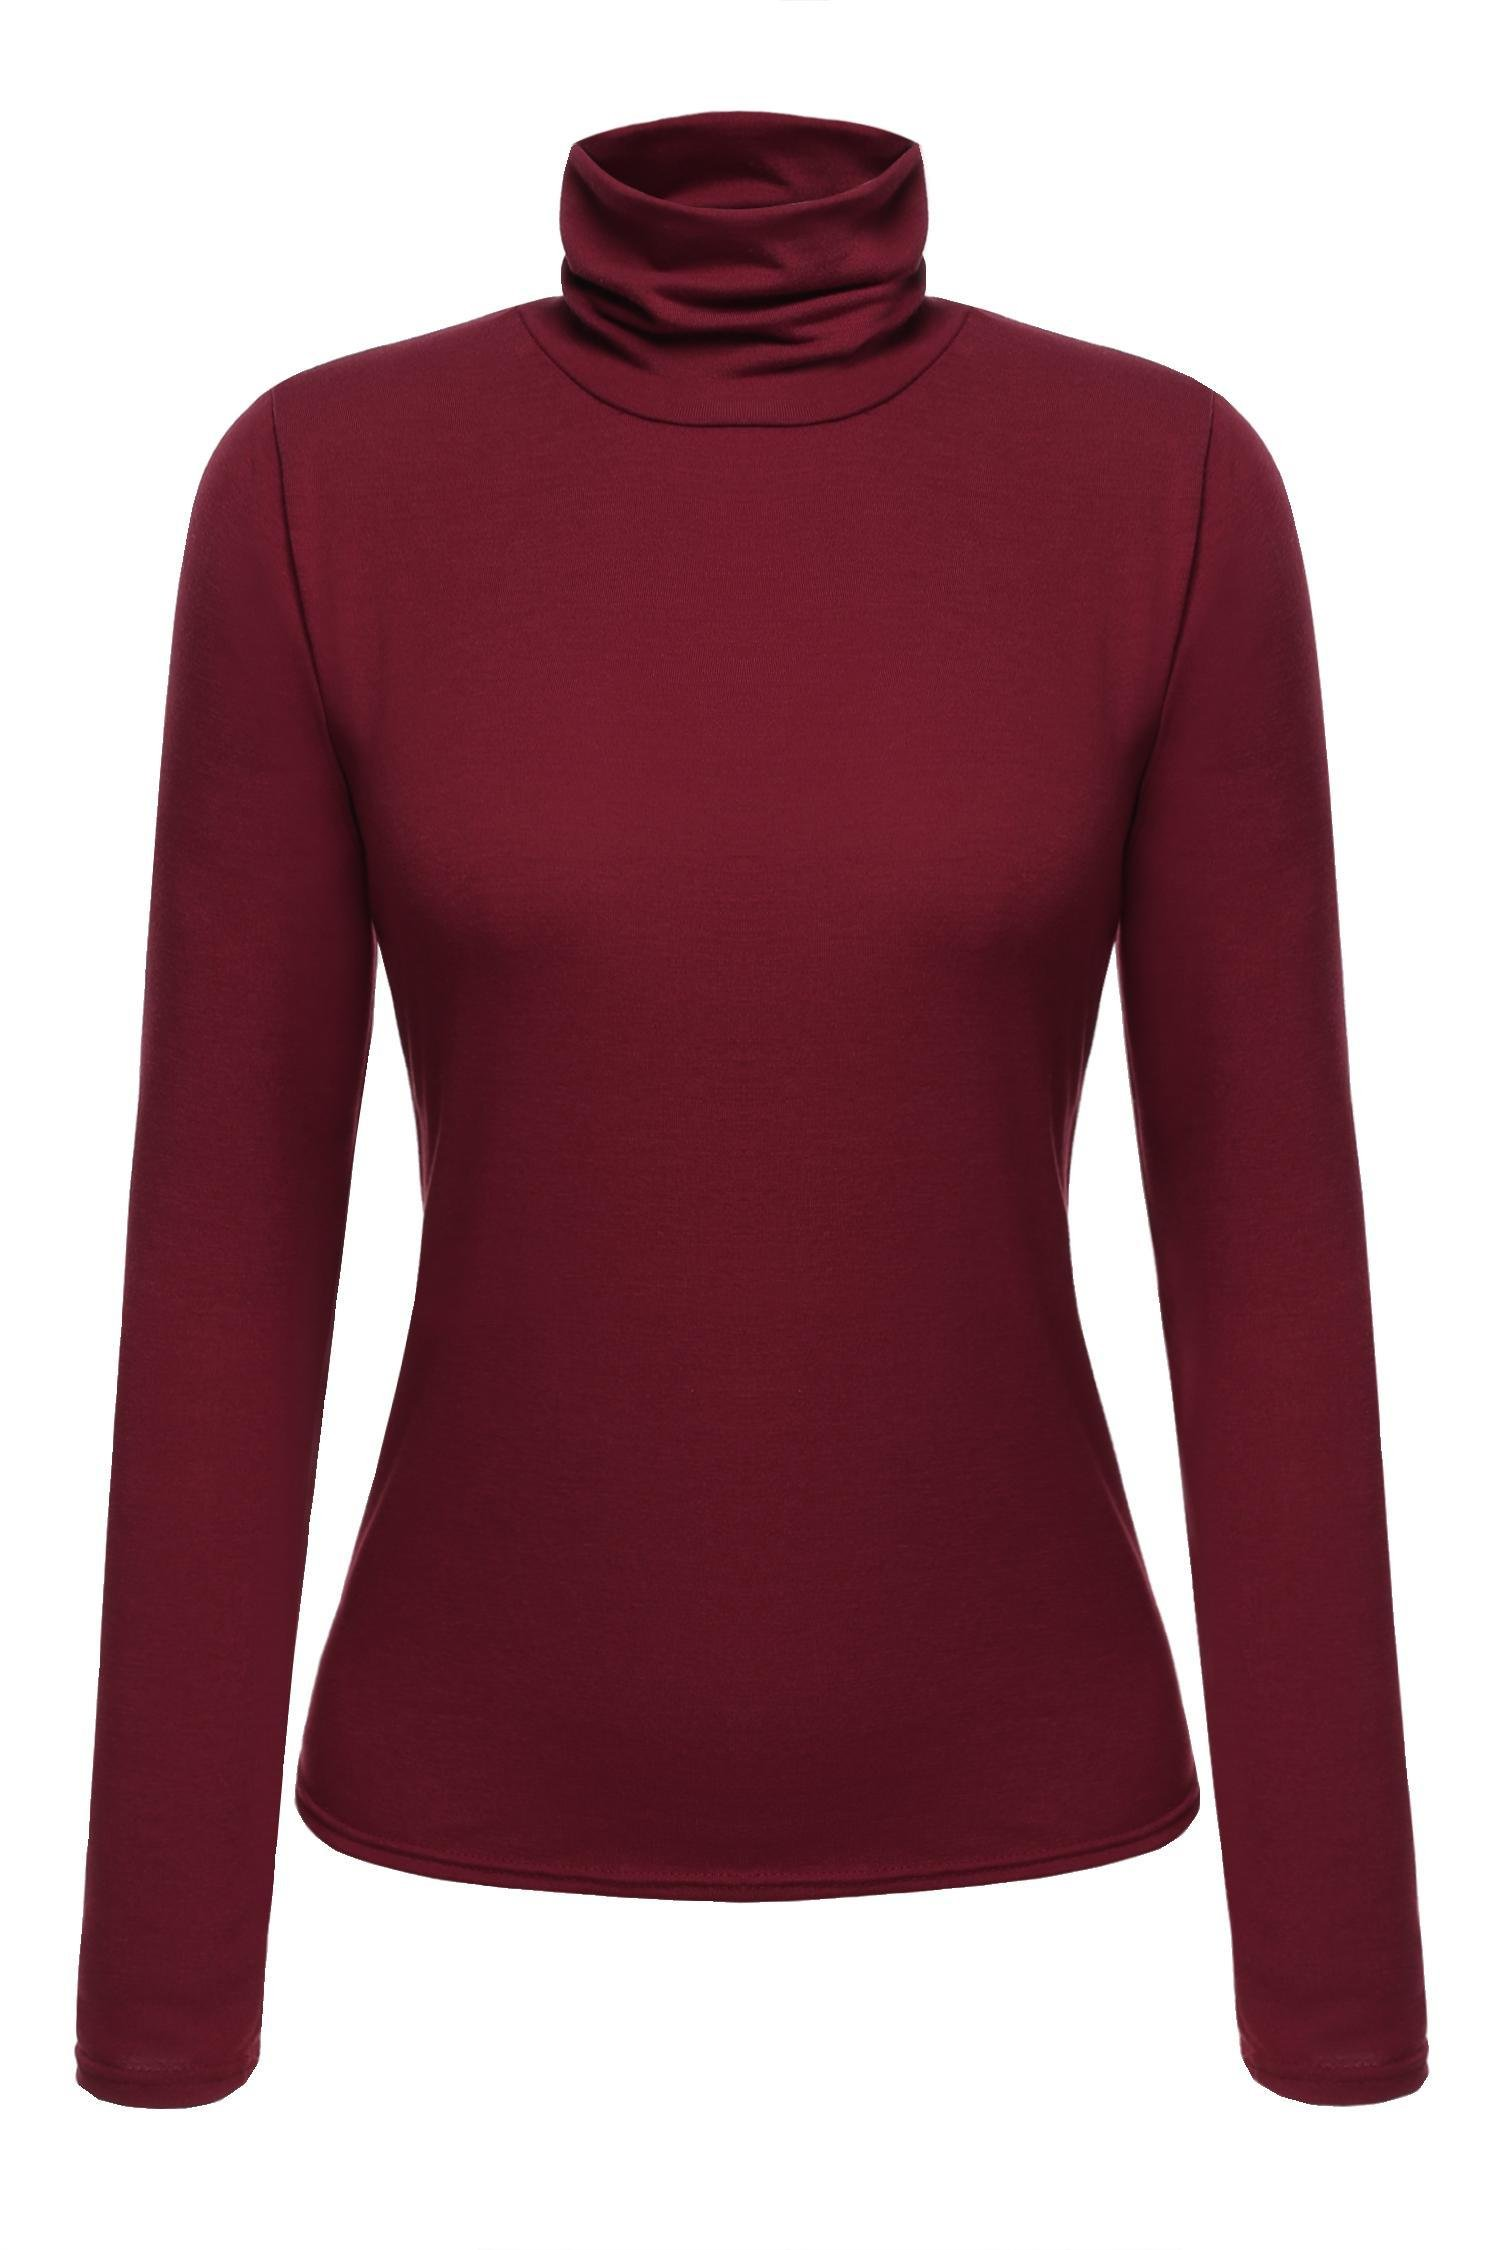 cindere Women's Long Sleeve Turtle Neck Bodycon Top Blouse (S, Wine red)